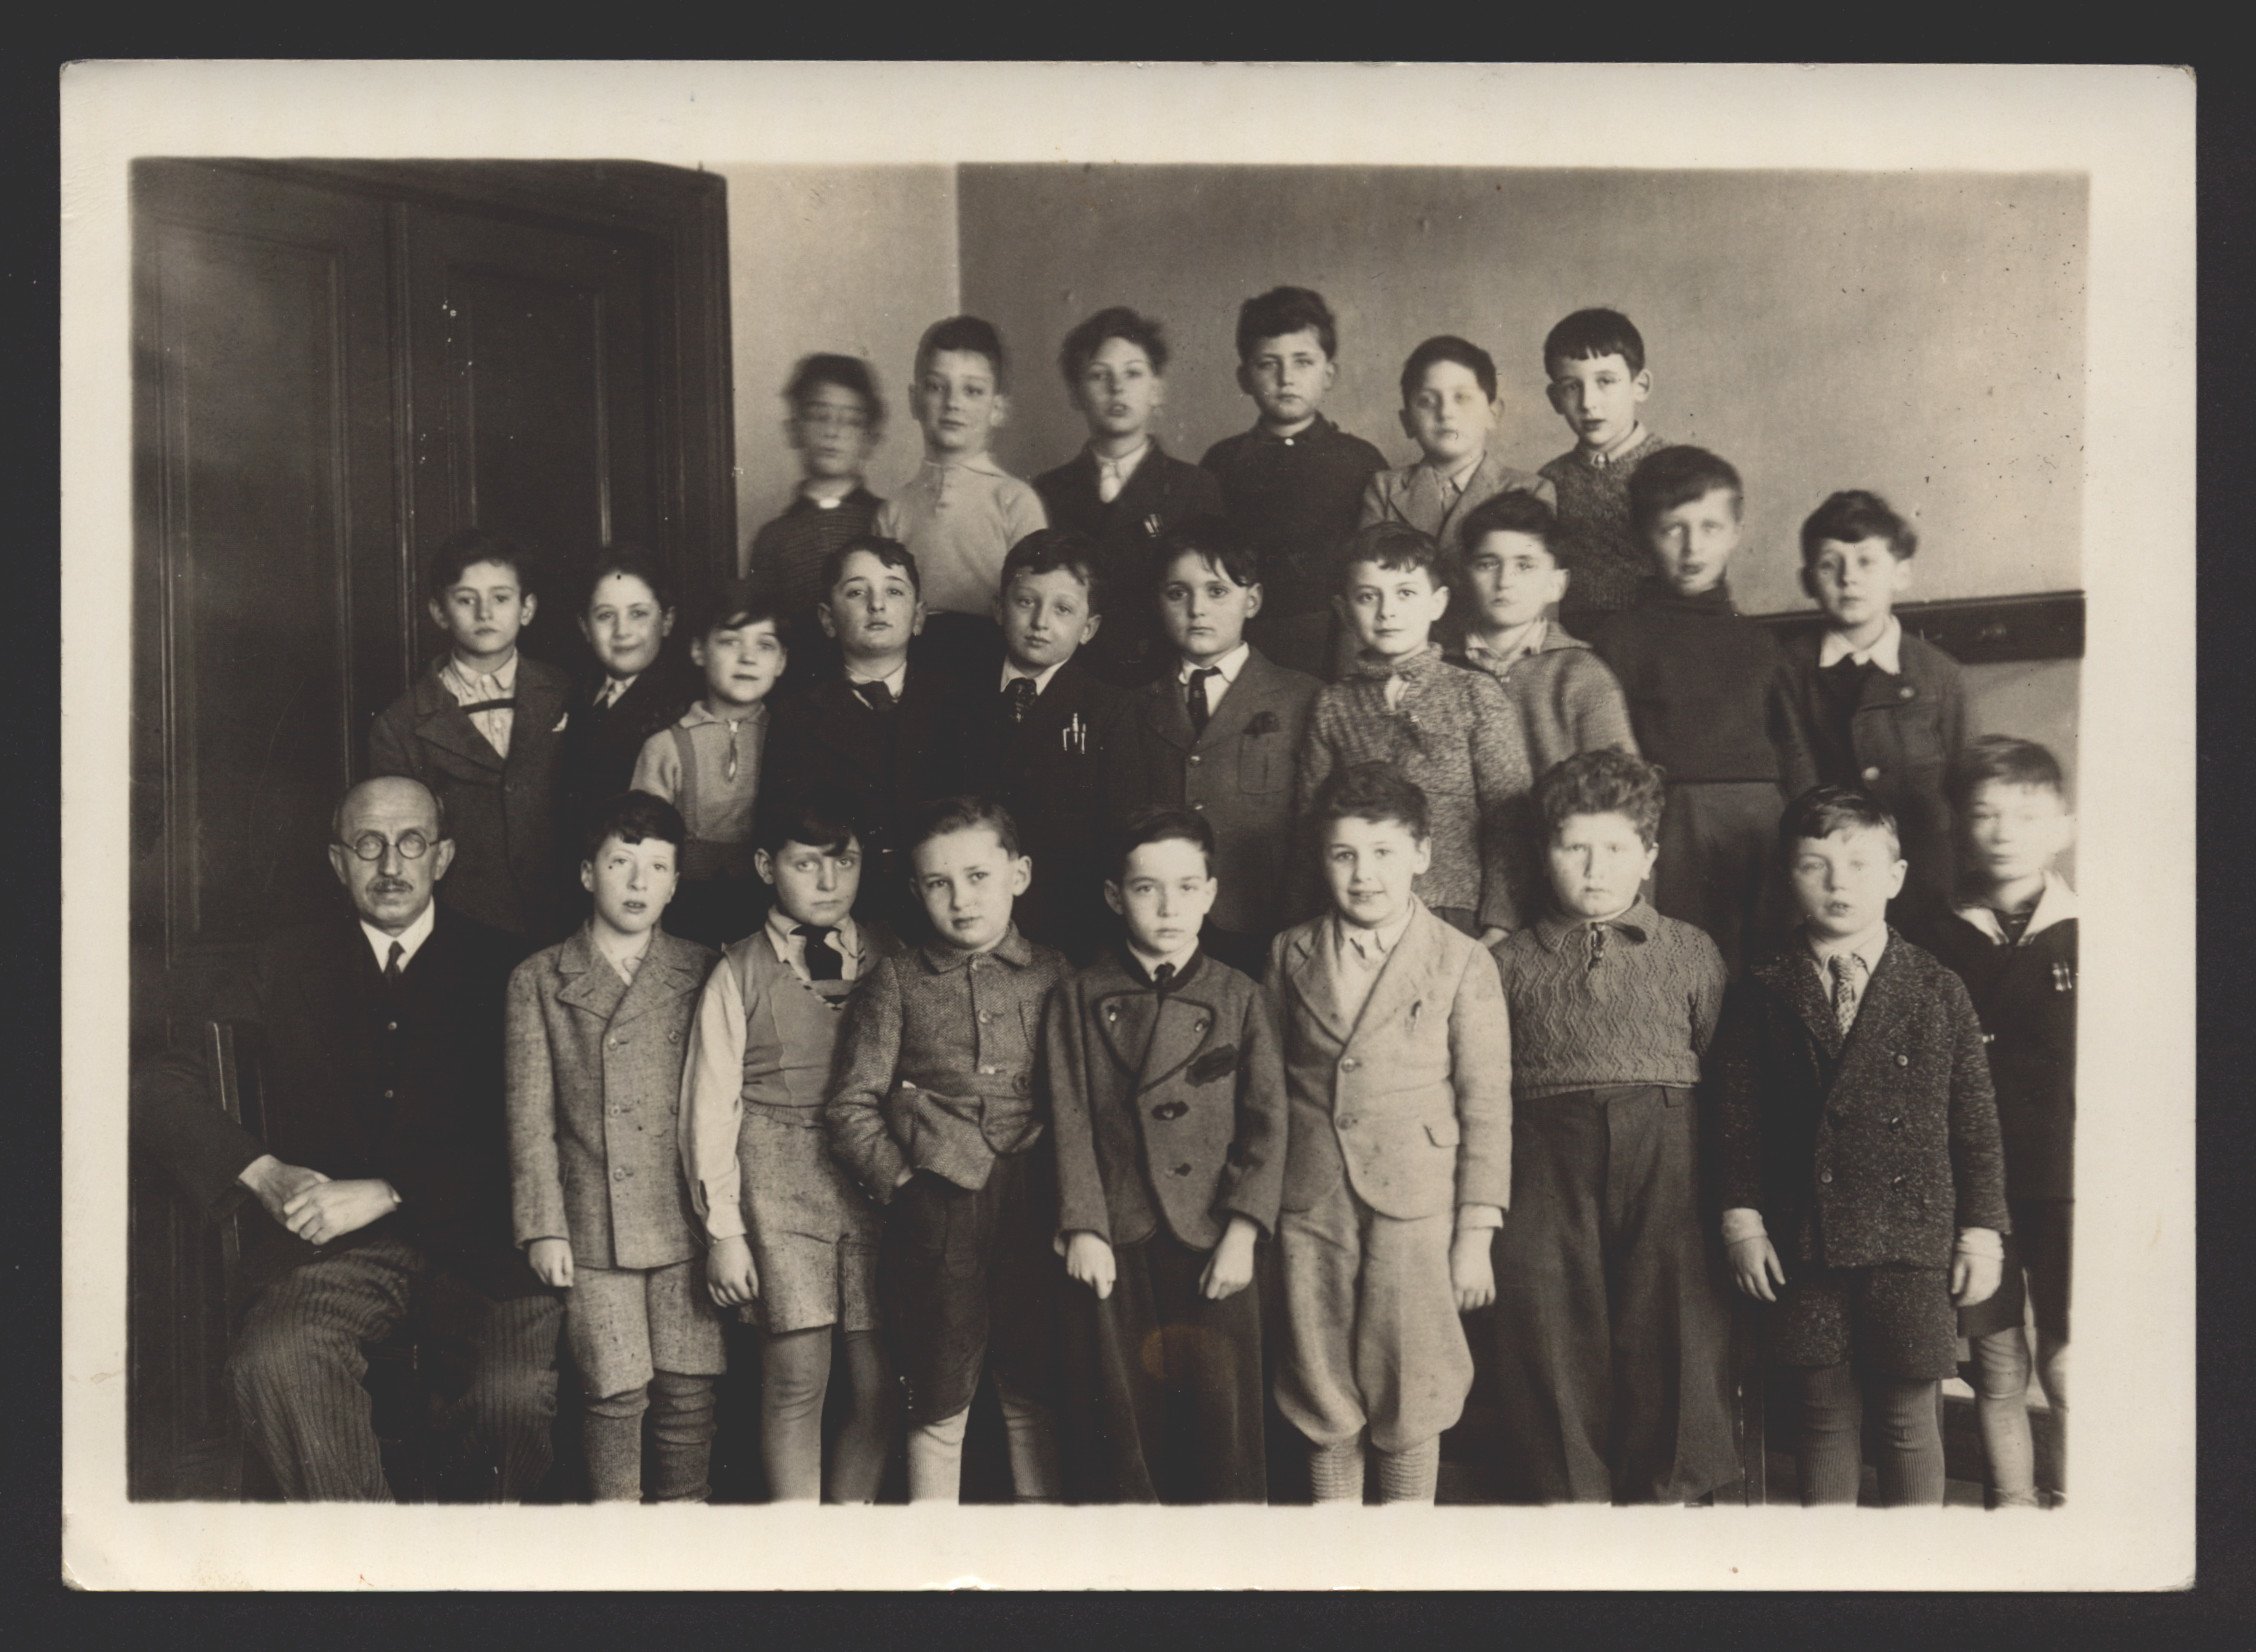 Second grade class in a Jewish school in Vienna.  Among those pictured is Erwin Tepper (front row, third from right).